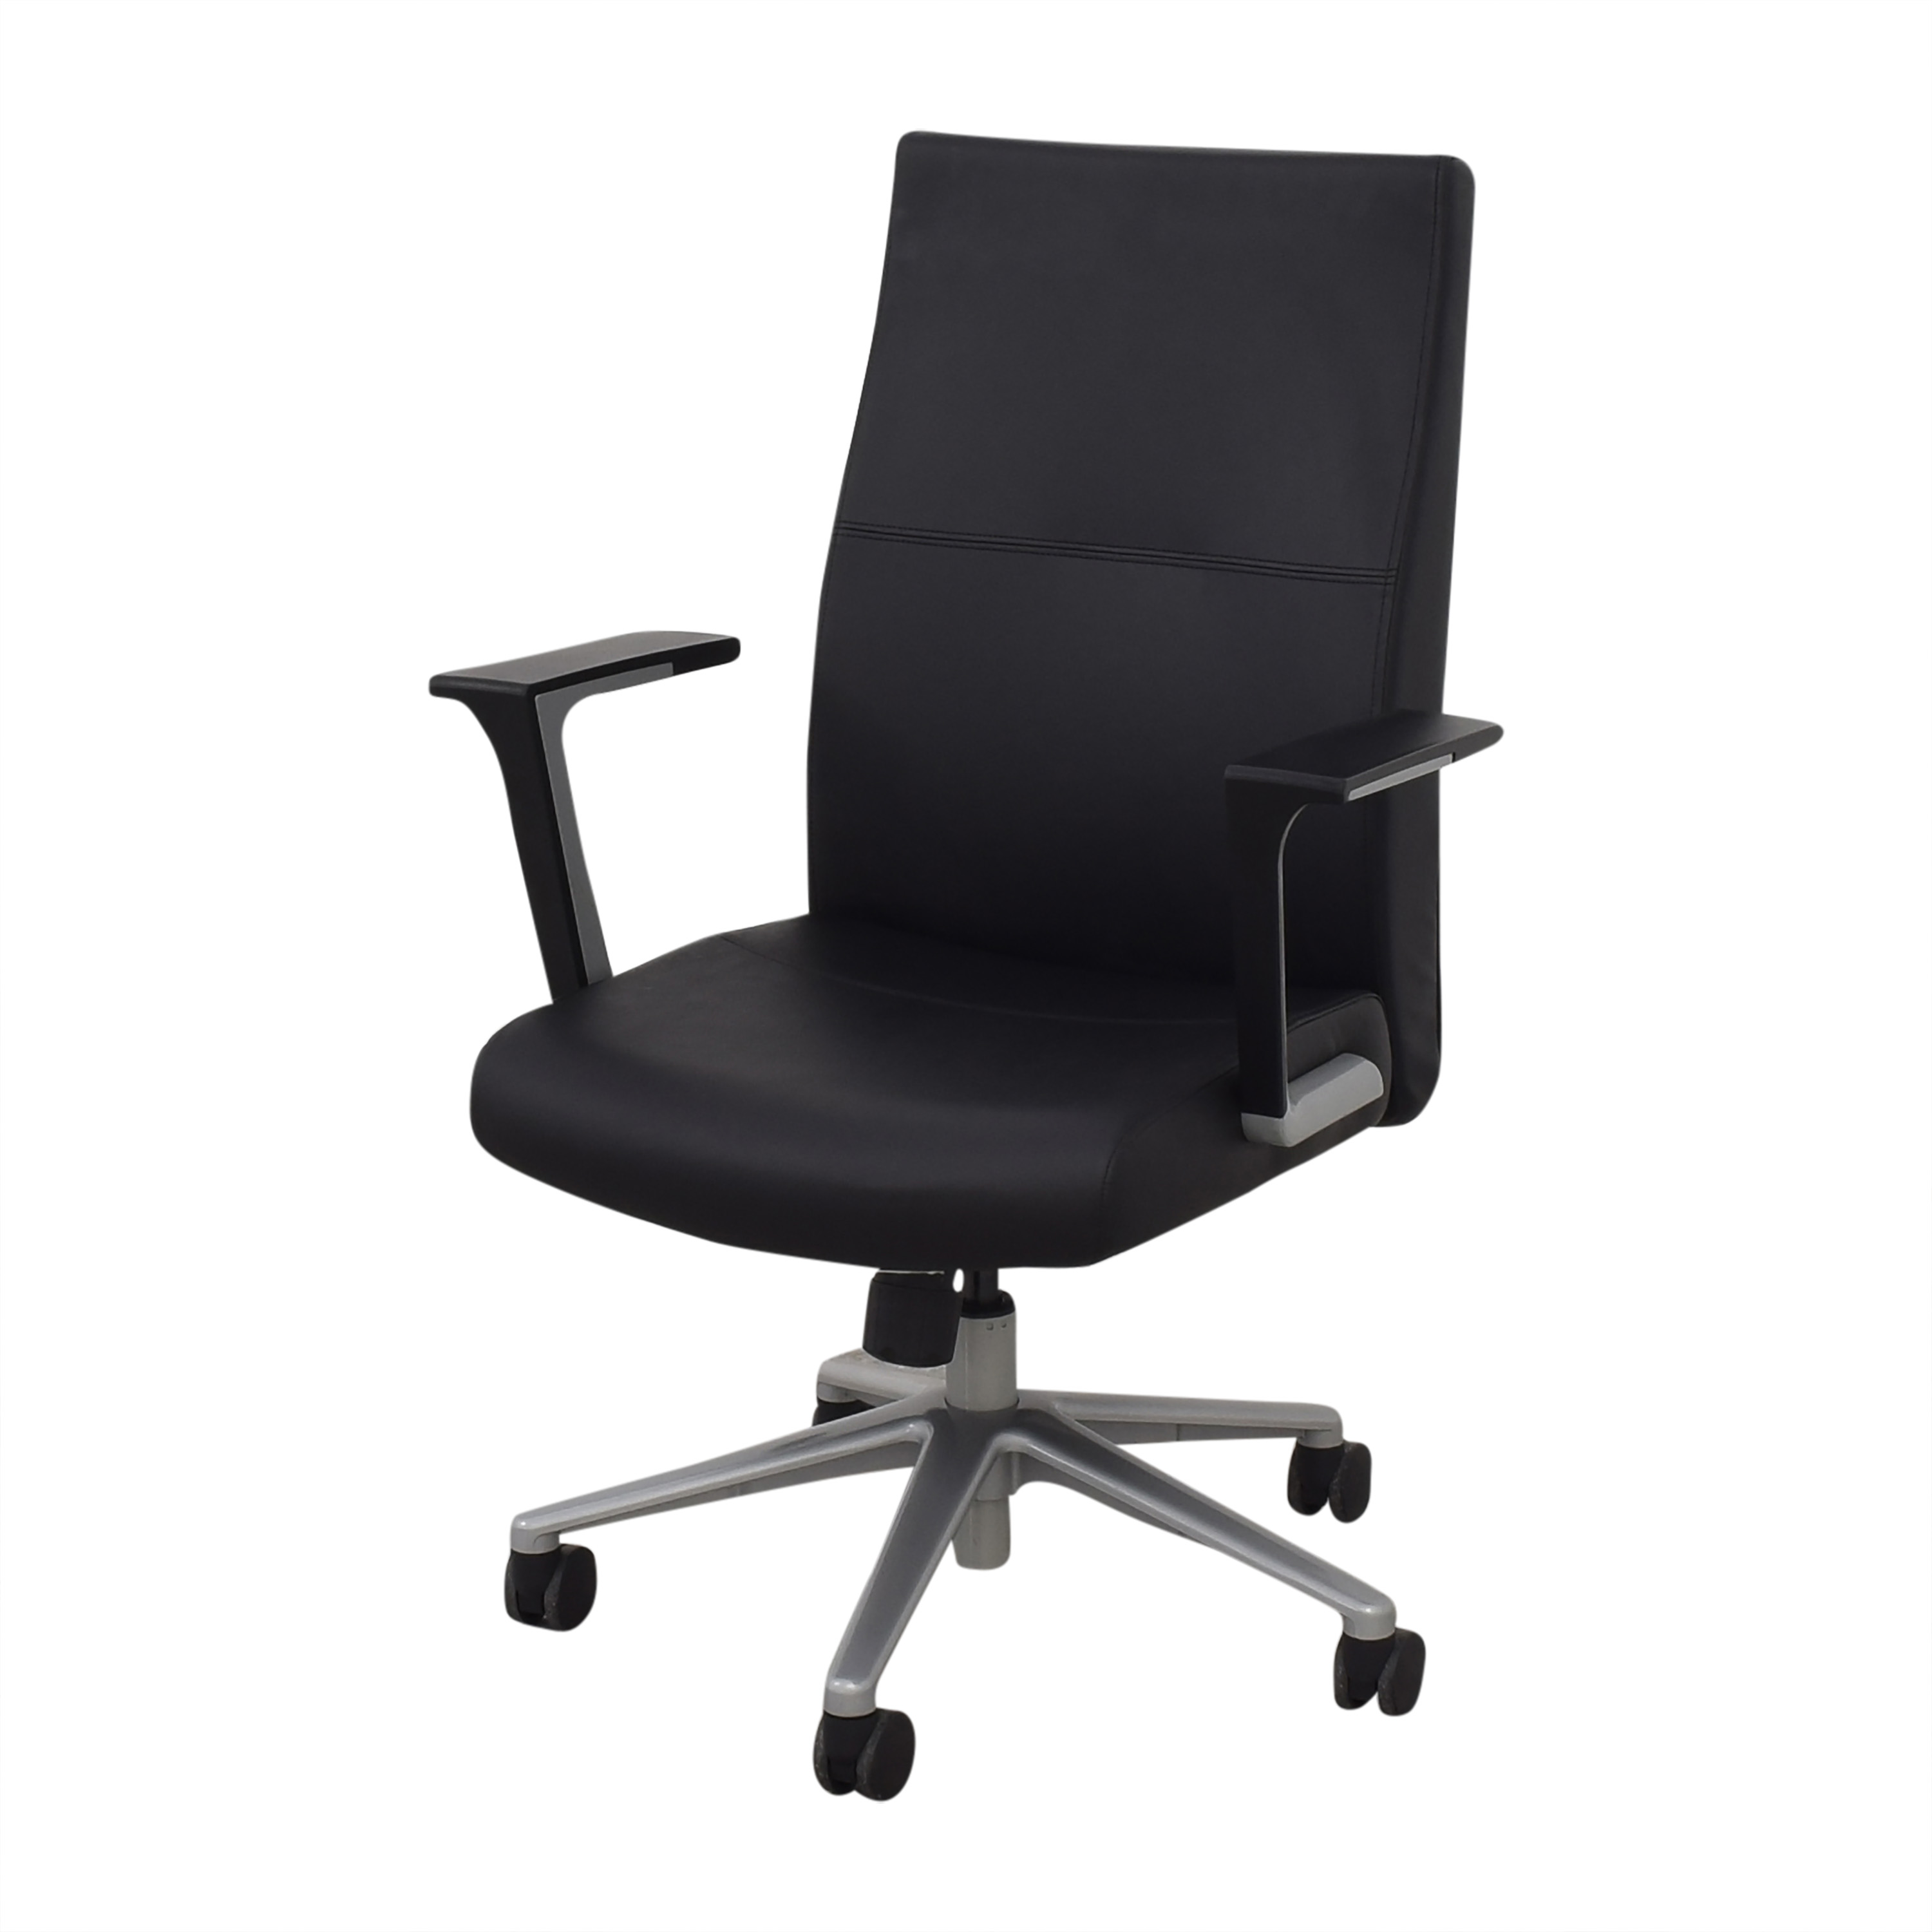 SitOnIt SitOnIt Prava Office Chair coupon